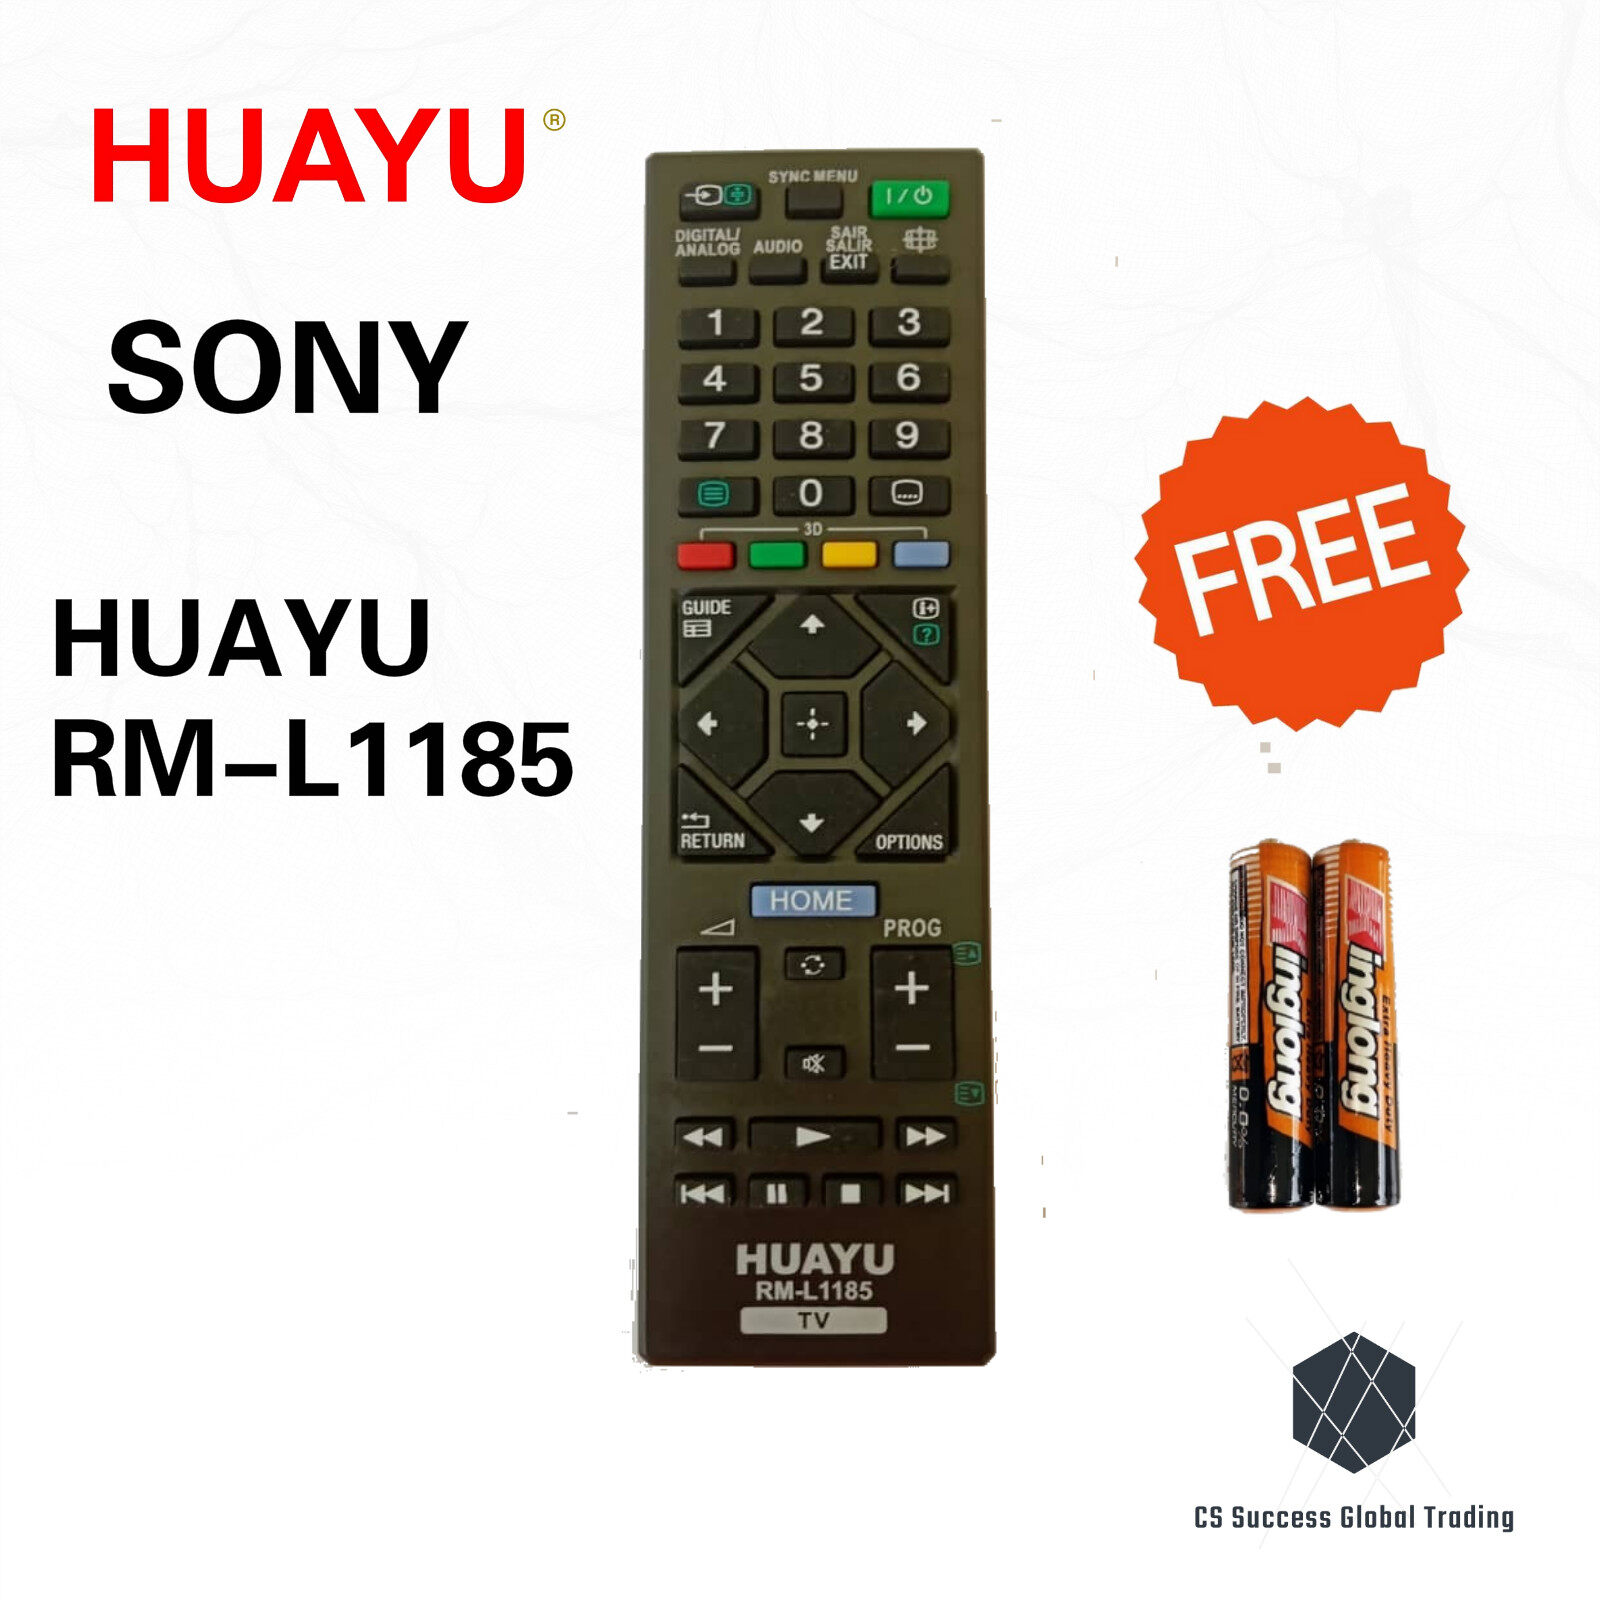 HUAYU SONY RM-L1185 COMMON LCD/LED TV REMOTE CONTROLER